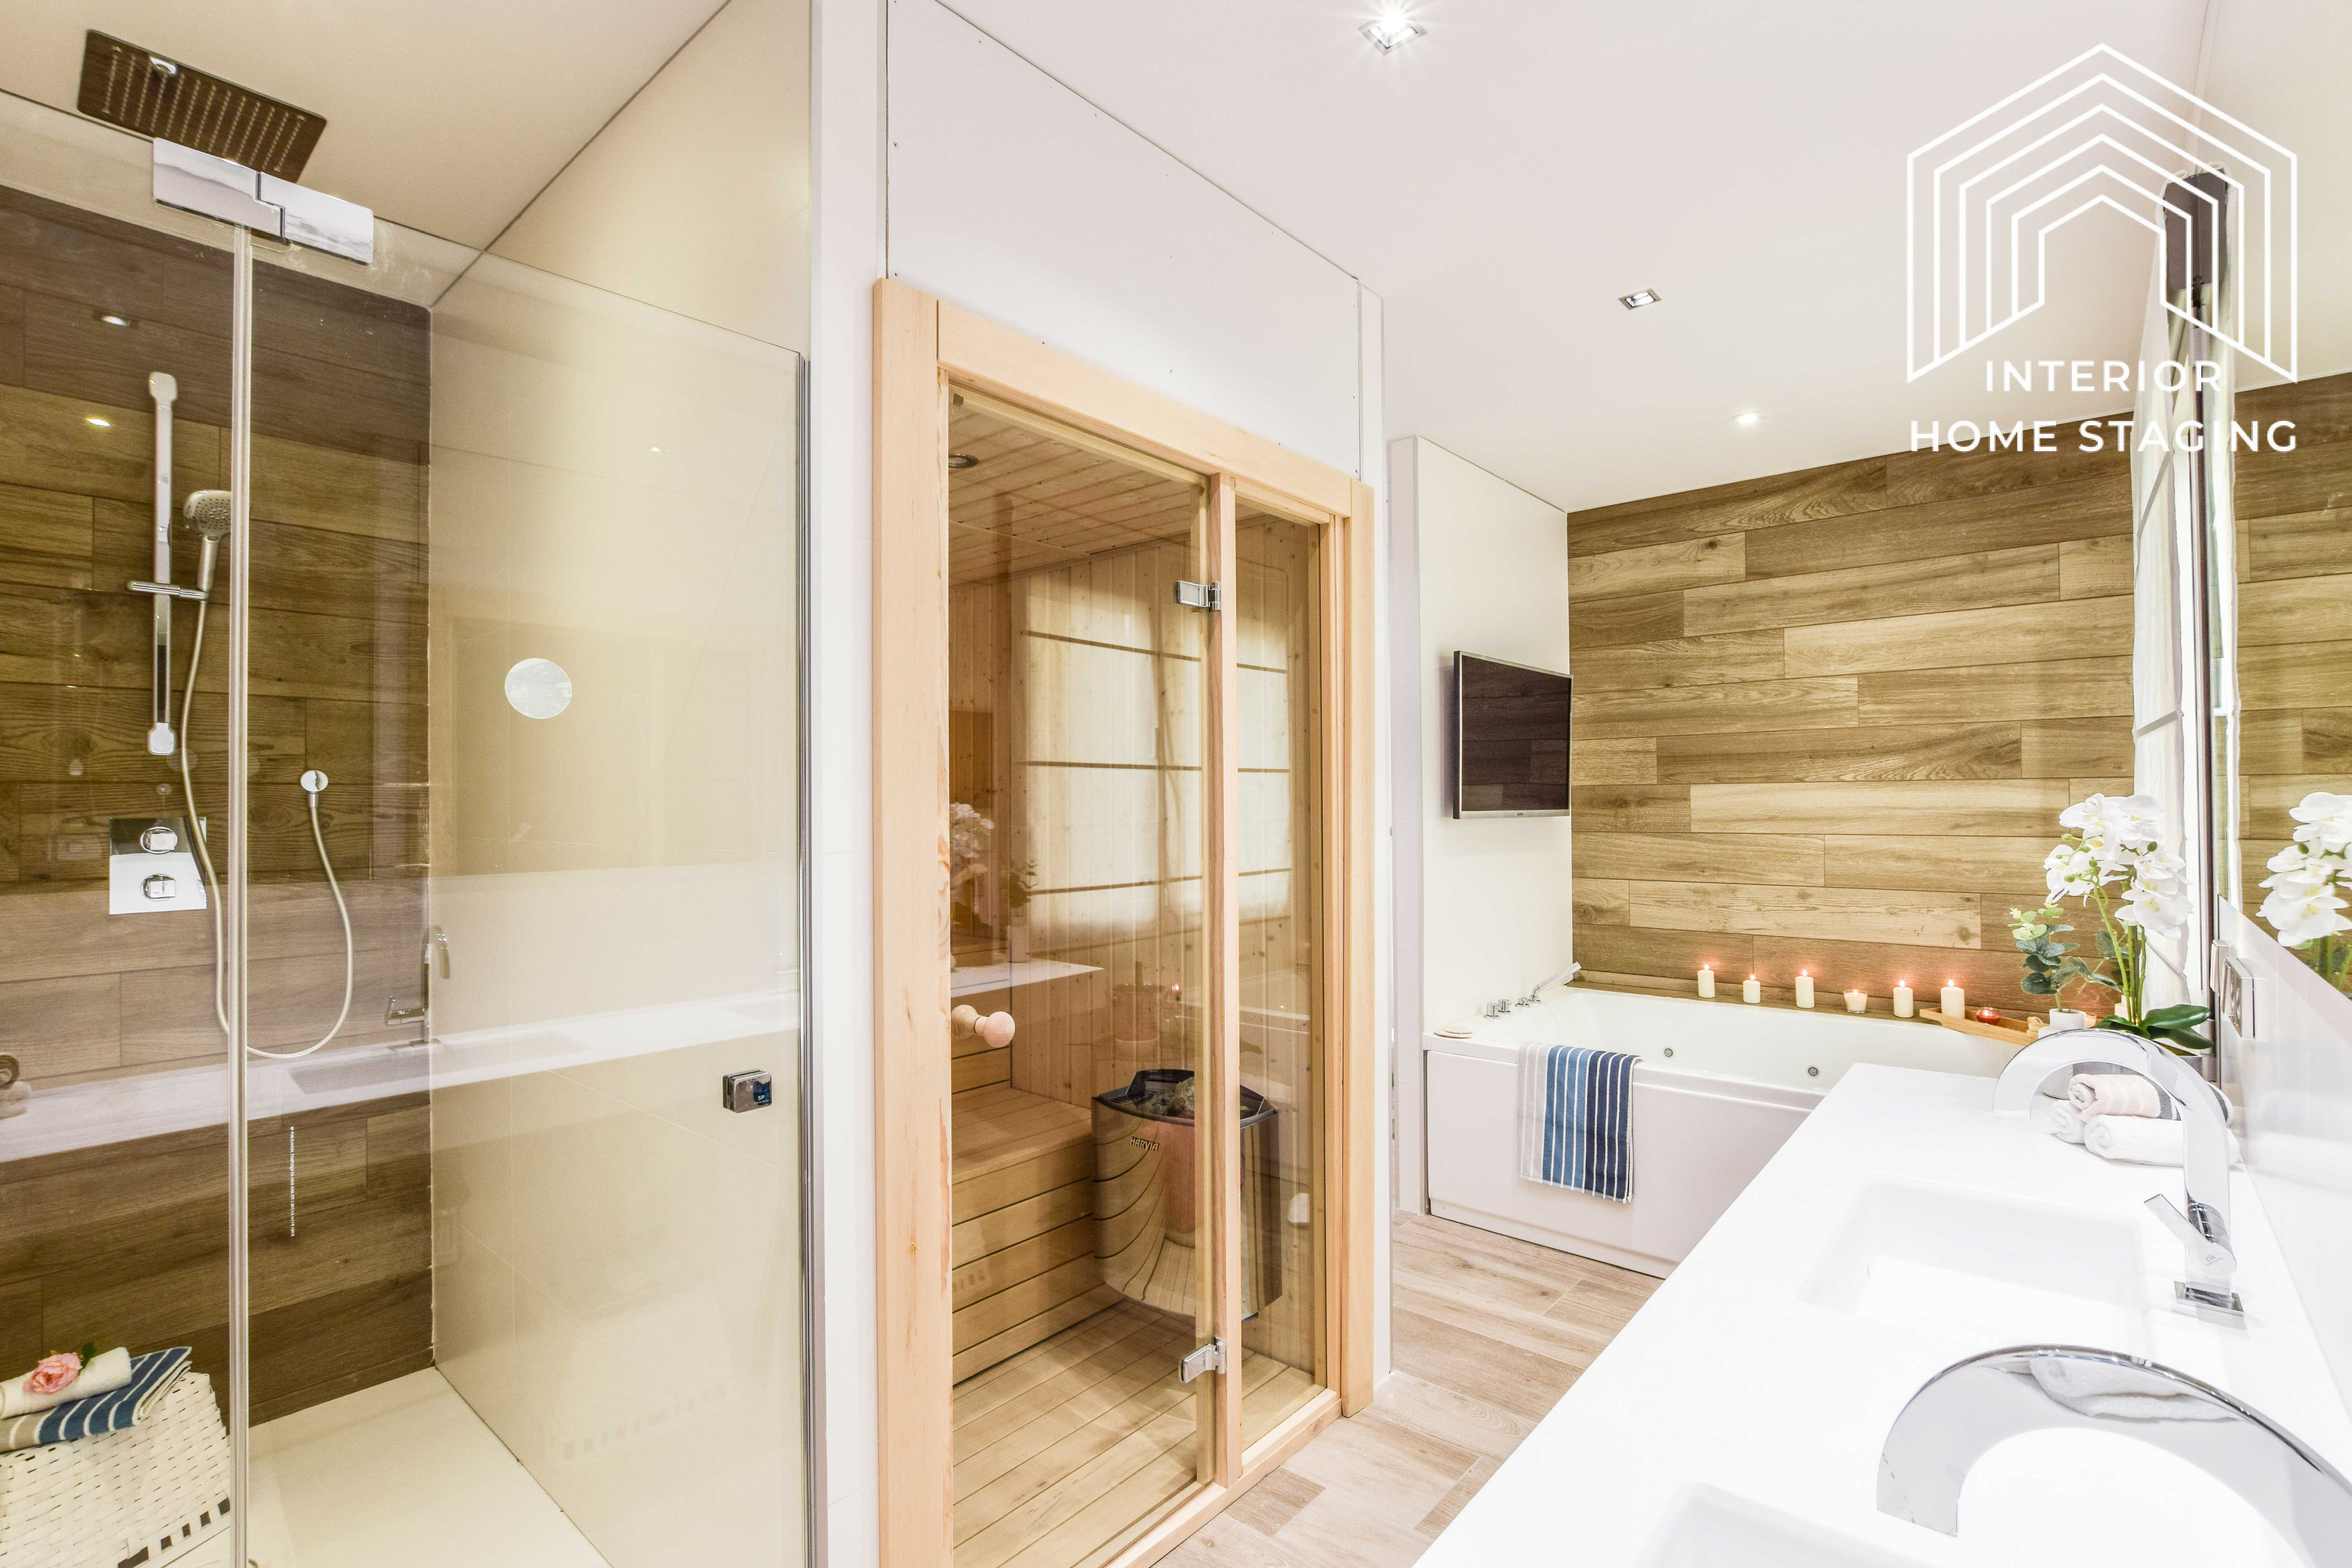 Interior Home Staging jacuzzi baño 5